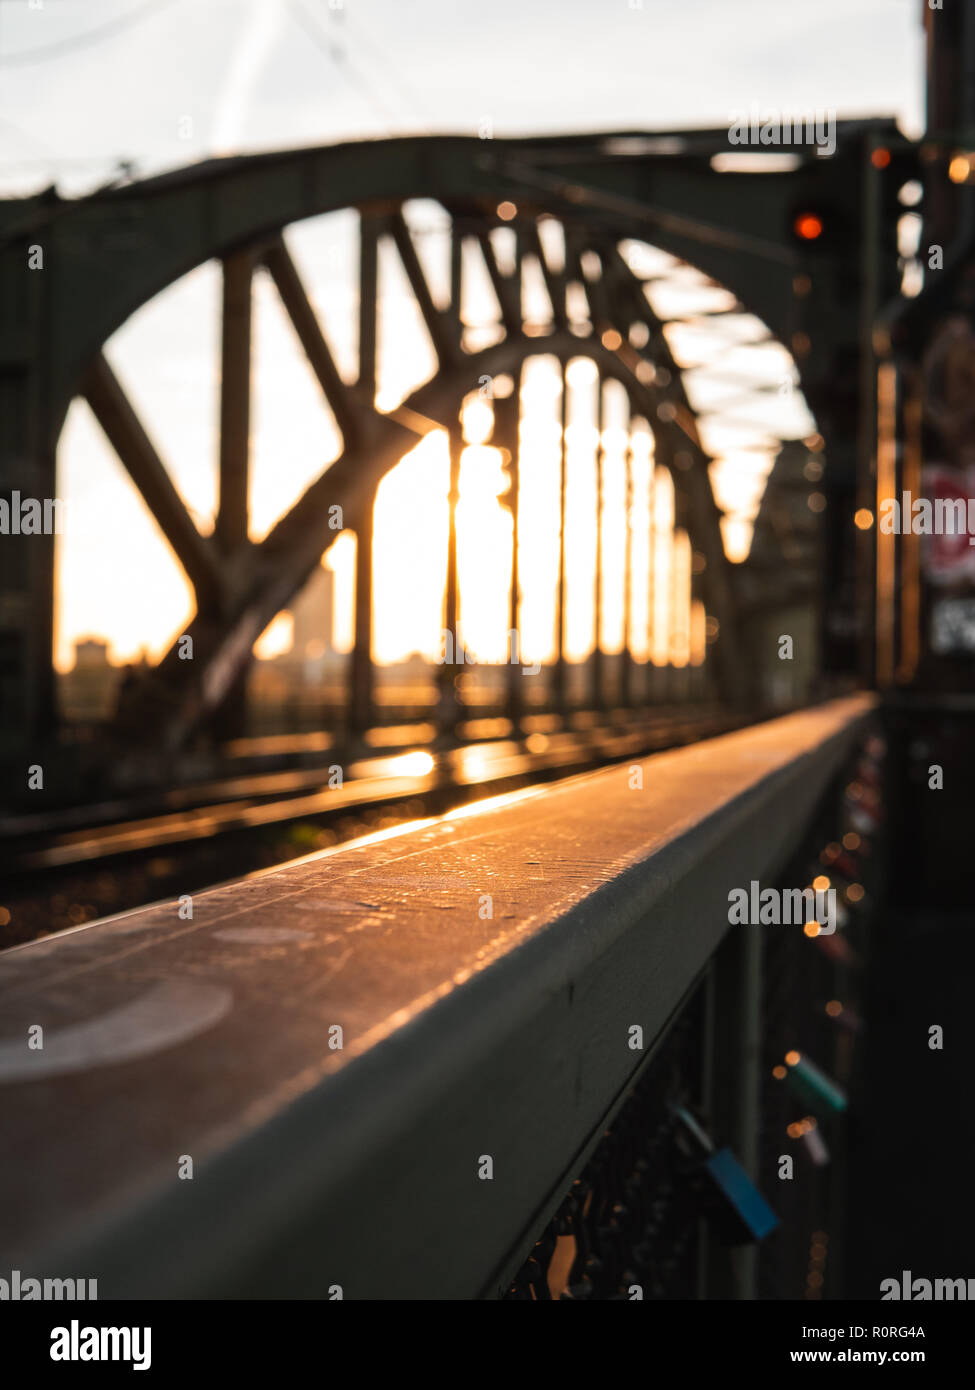 Railings of a bridge at sunset, with bridge blurred in background. Cologne, Germany. - Stock Image